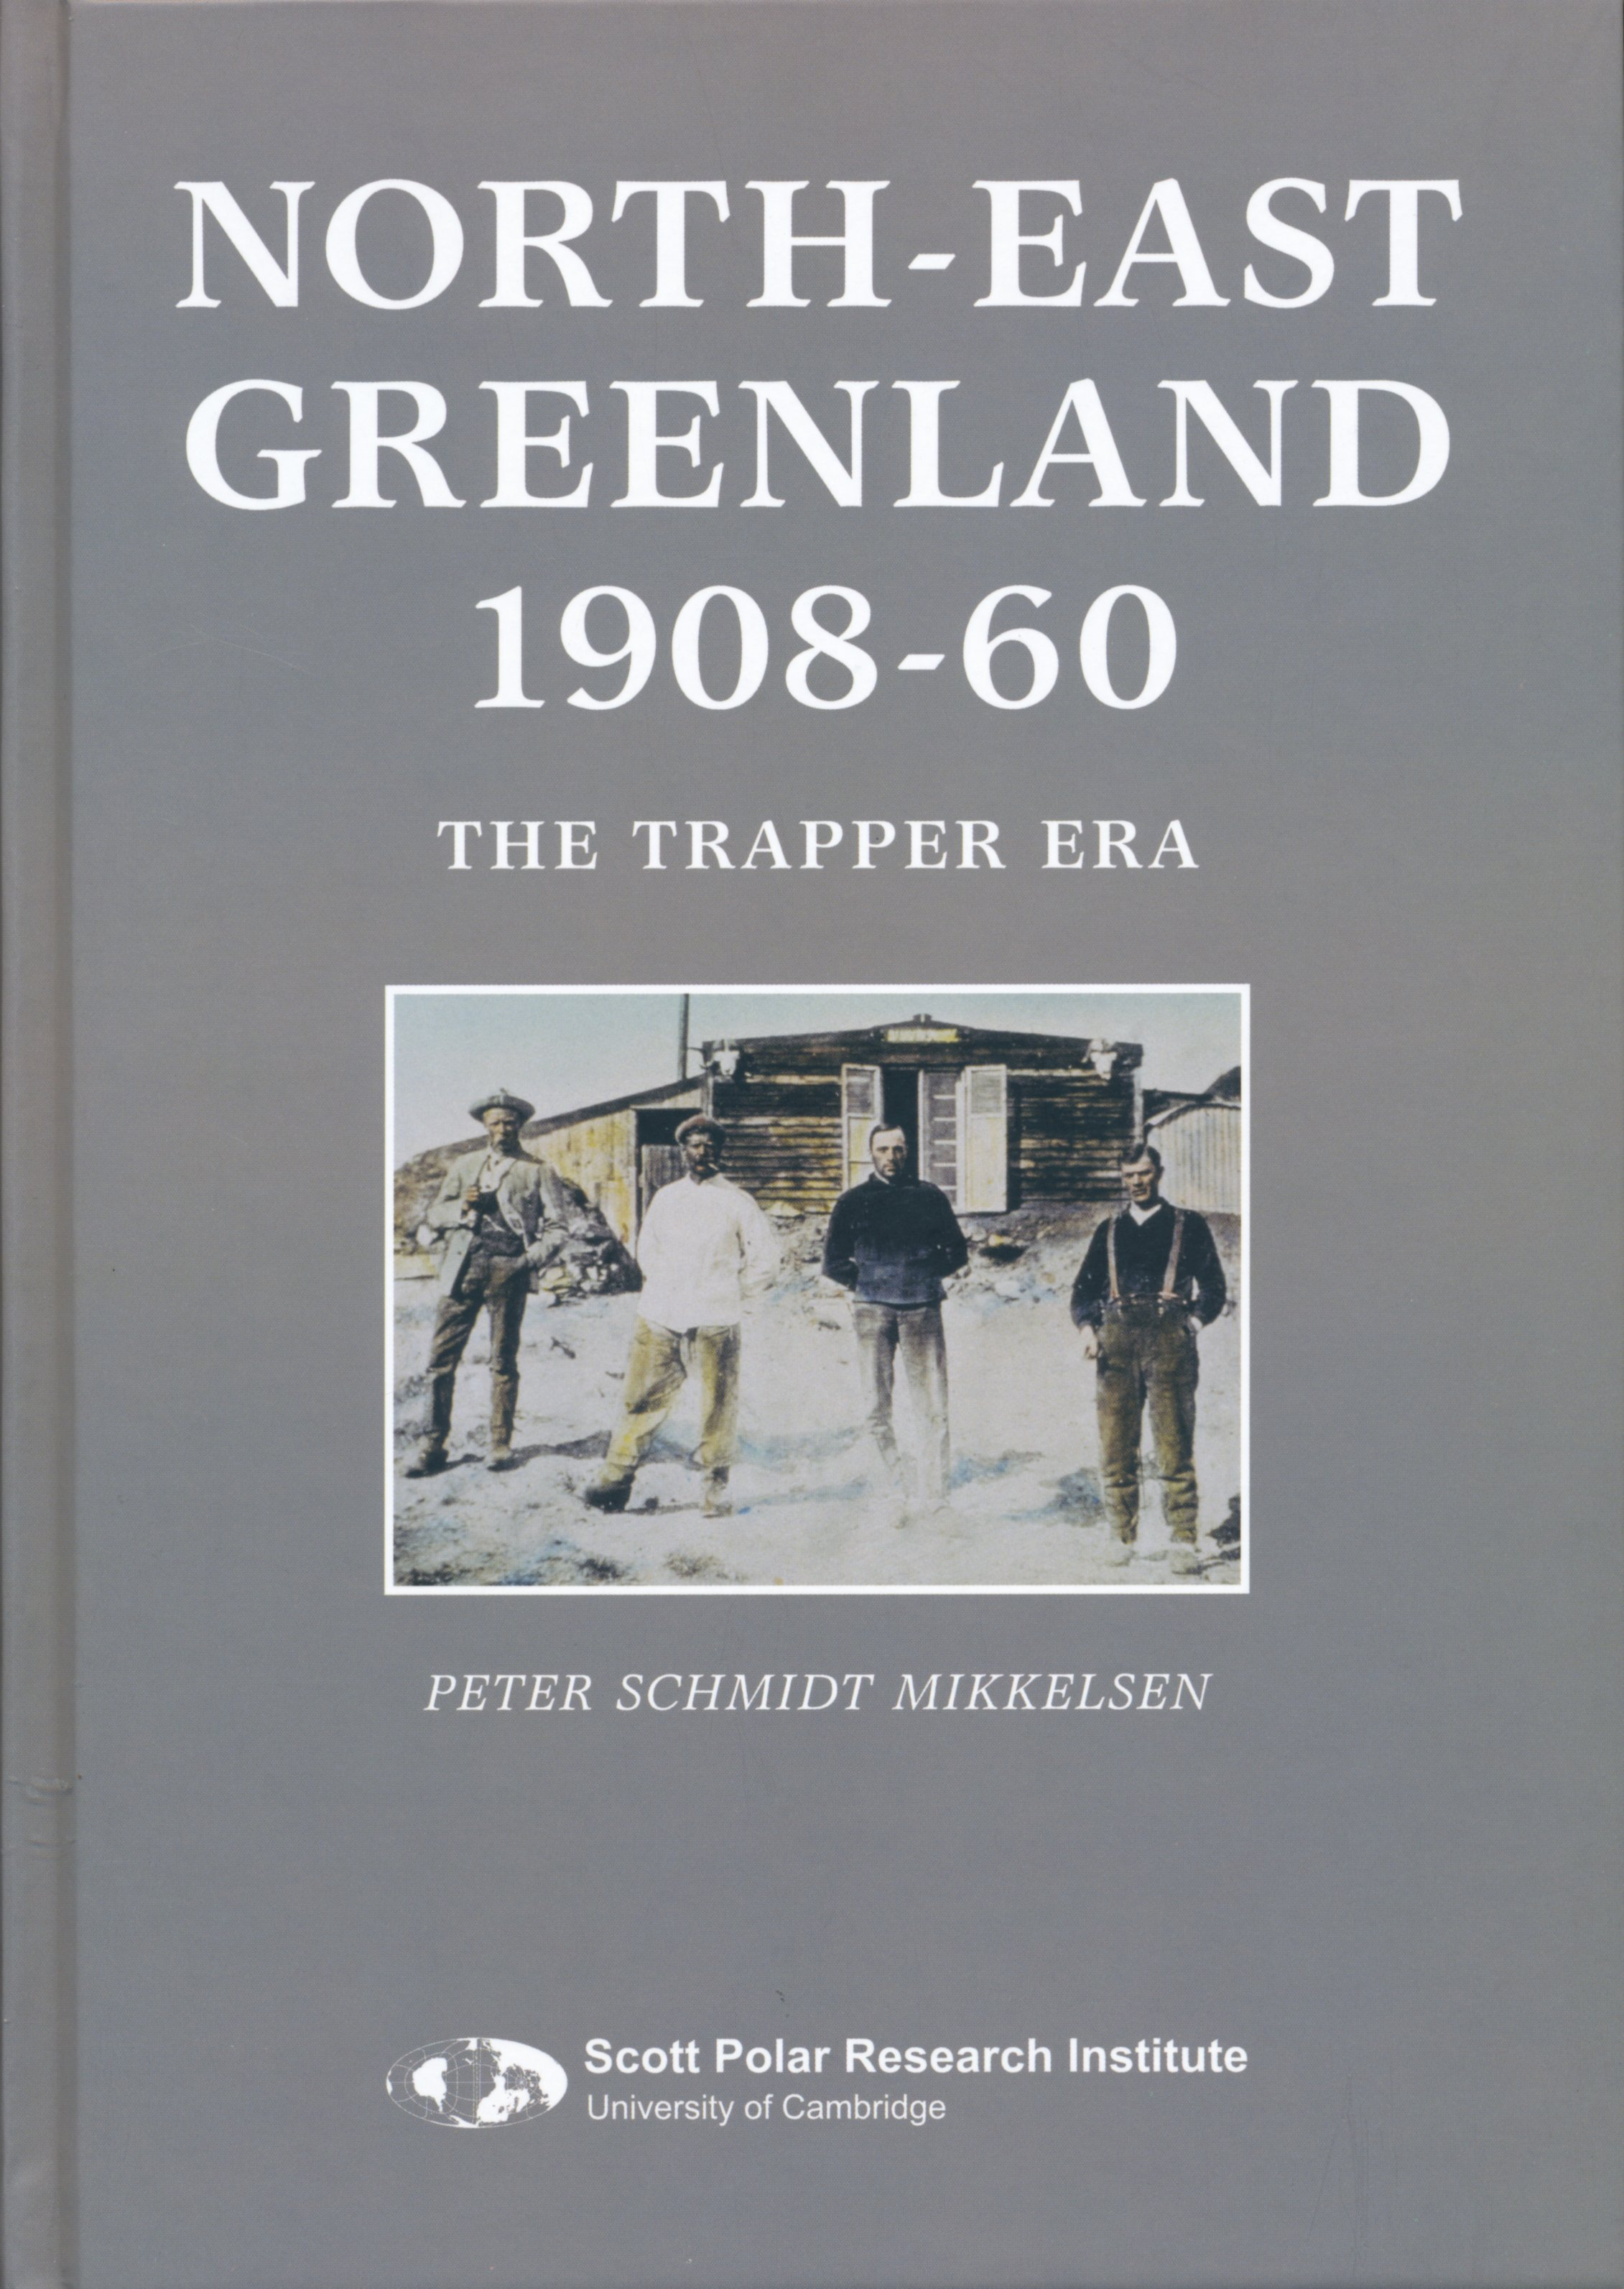 NORTH-EAST GREENLAND 1908-60. The Trapper Era